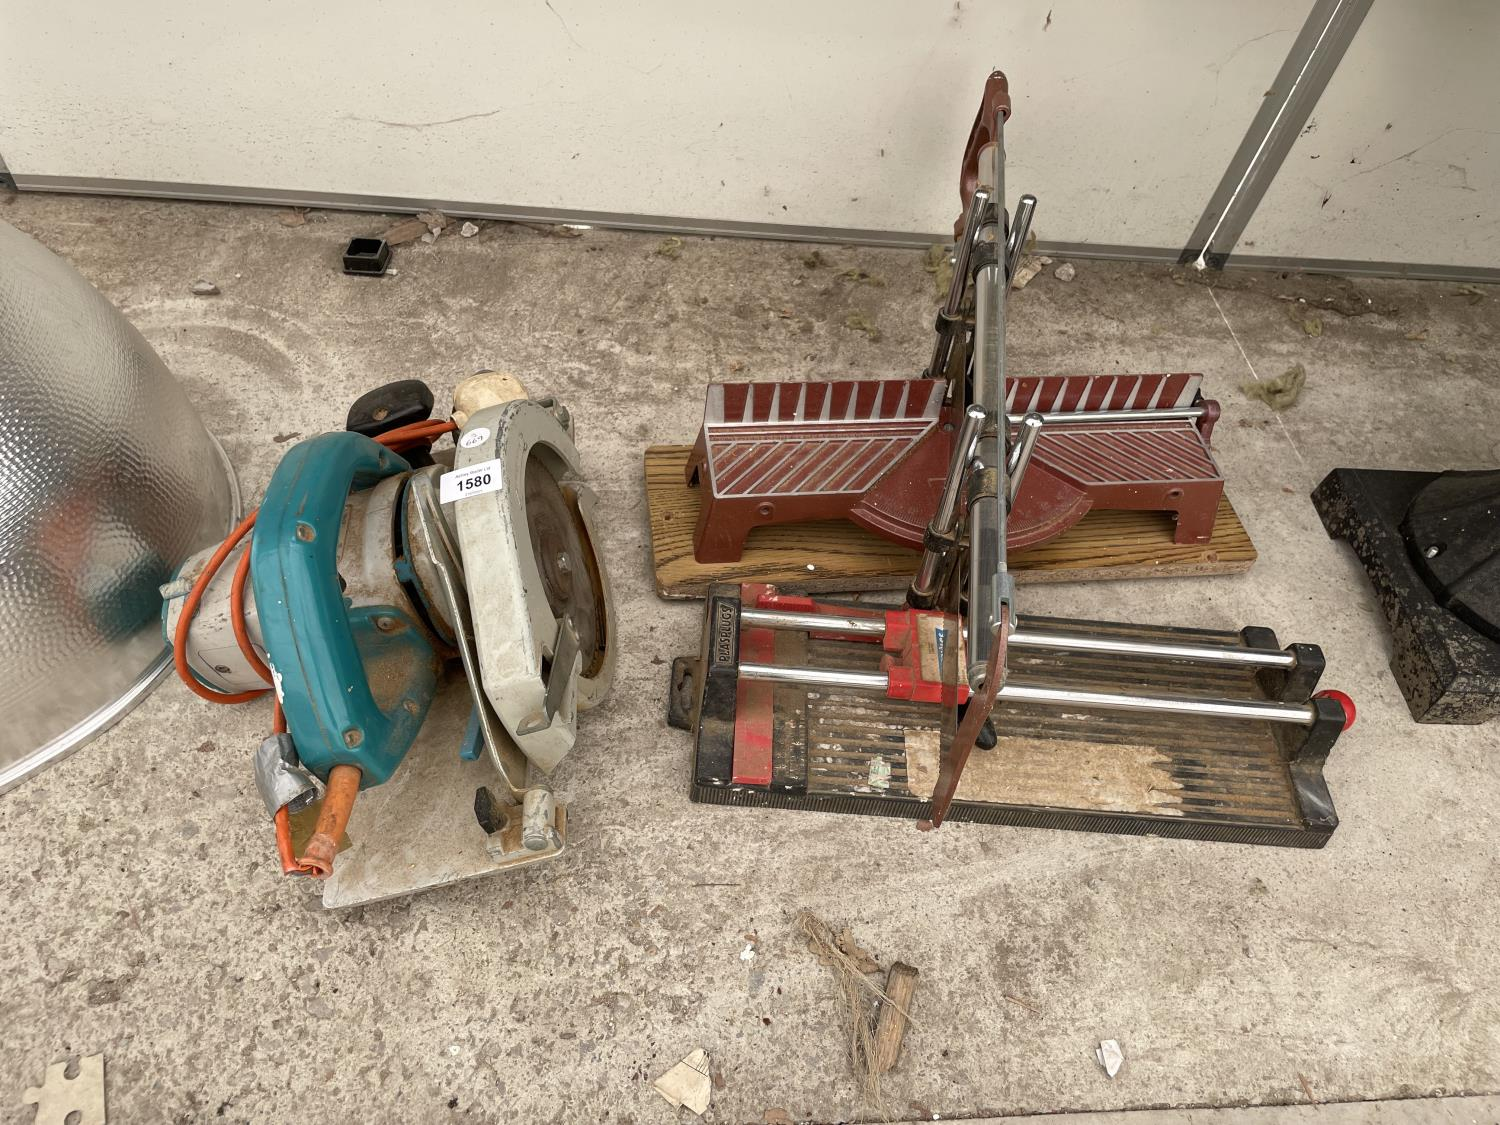 A WOLF CIRCULAR SAW AND TWO MITRE SAWS